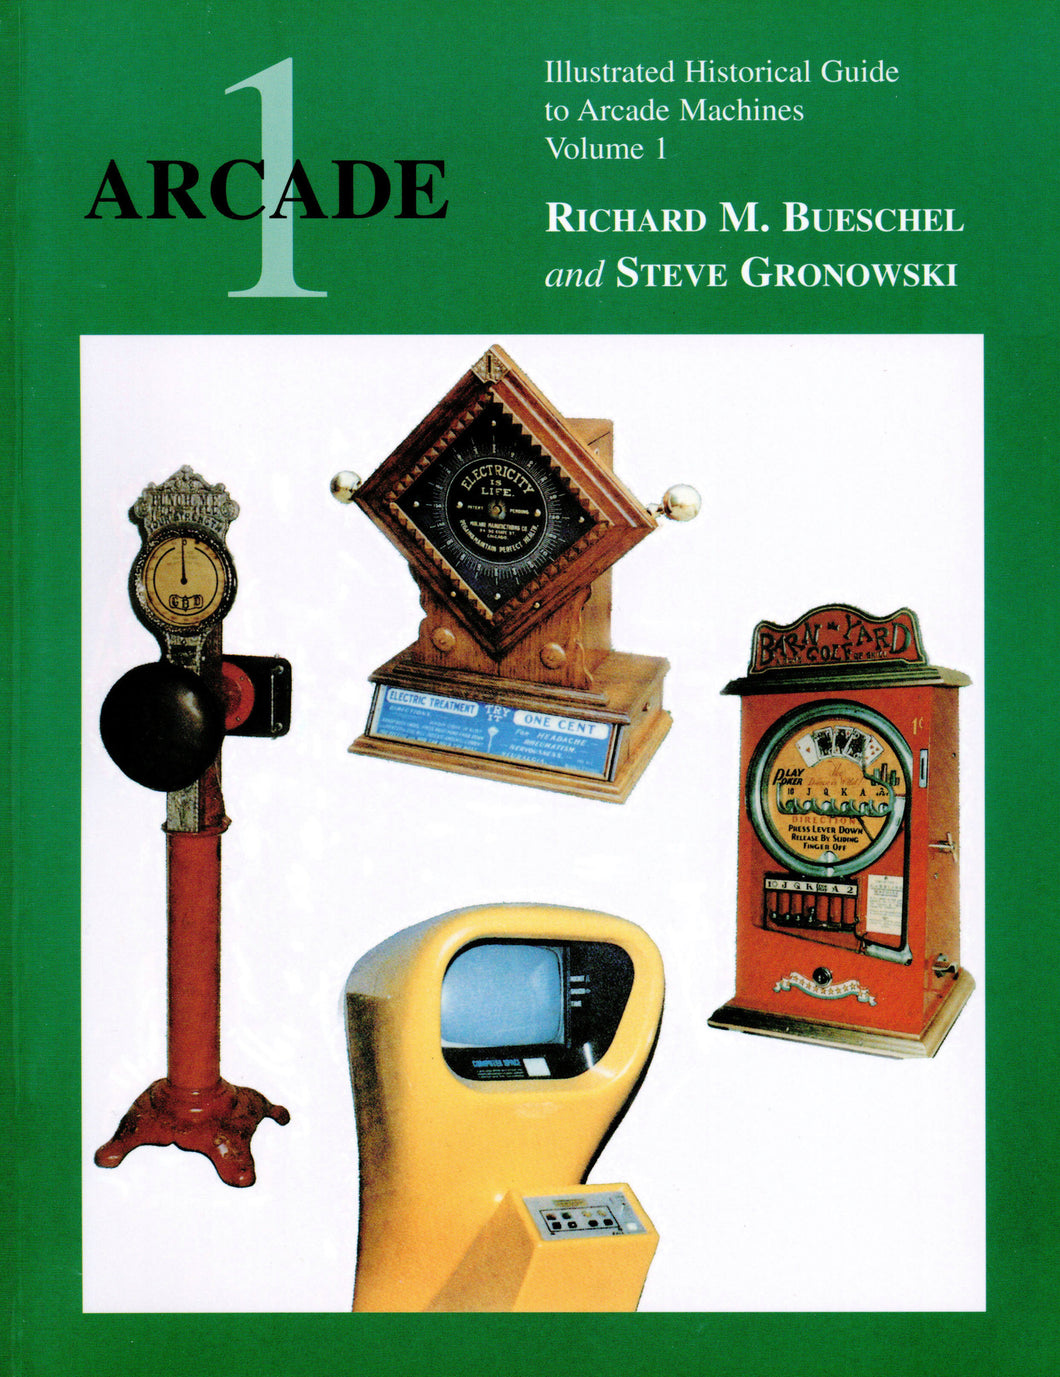 ARCADE 1: Illustrated Historical Guide to Arcade Machines